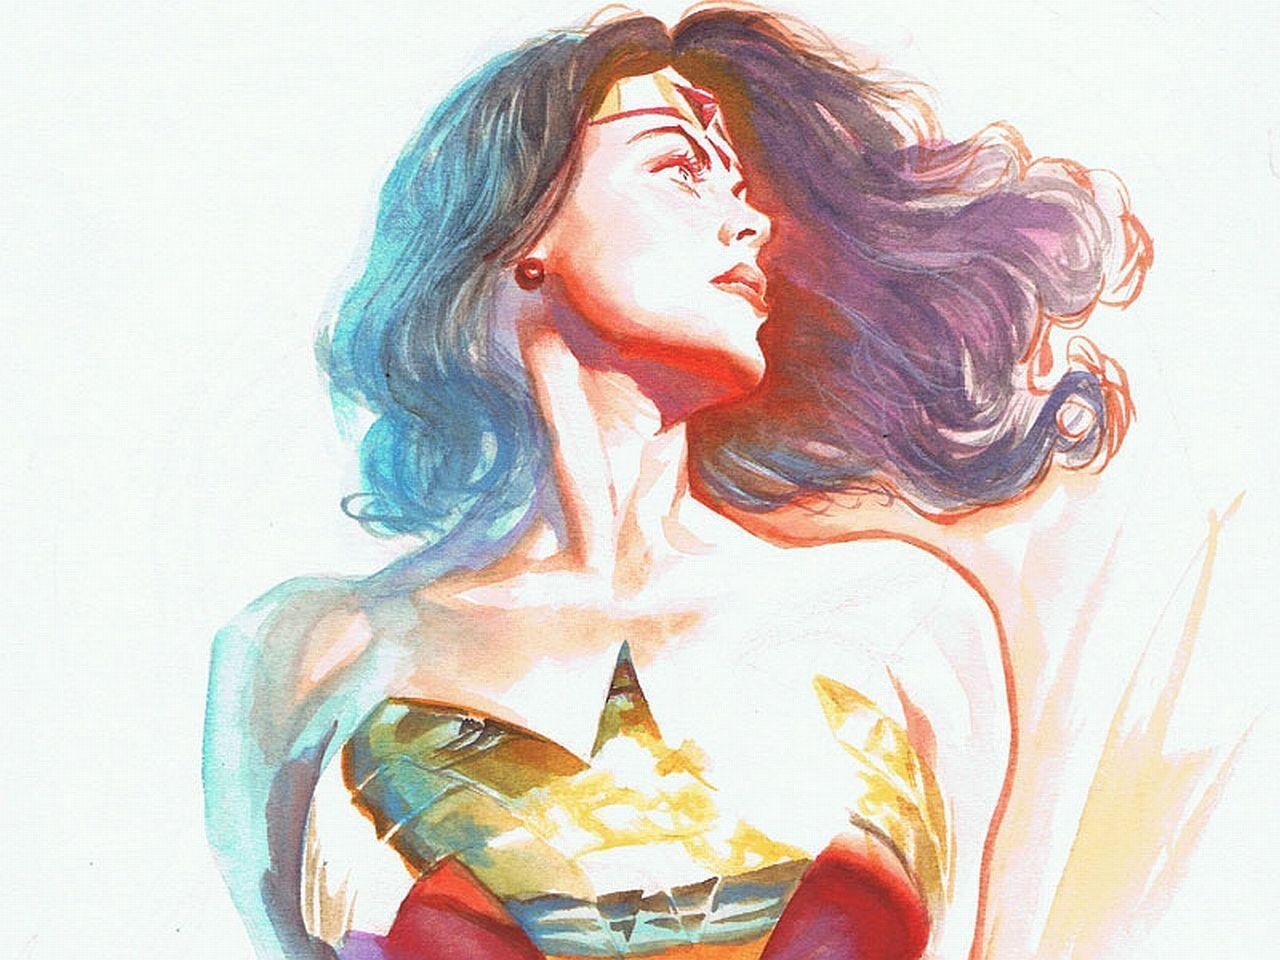 Wonder Woman Computer Wallpapers, Desktop Backgrounds | 1280x960 ...